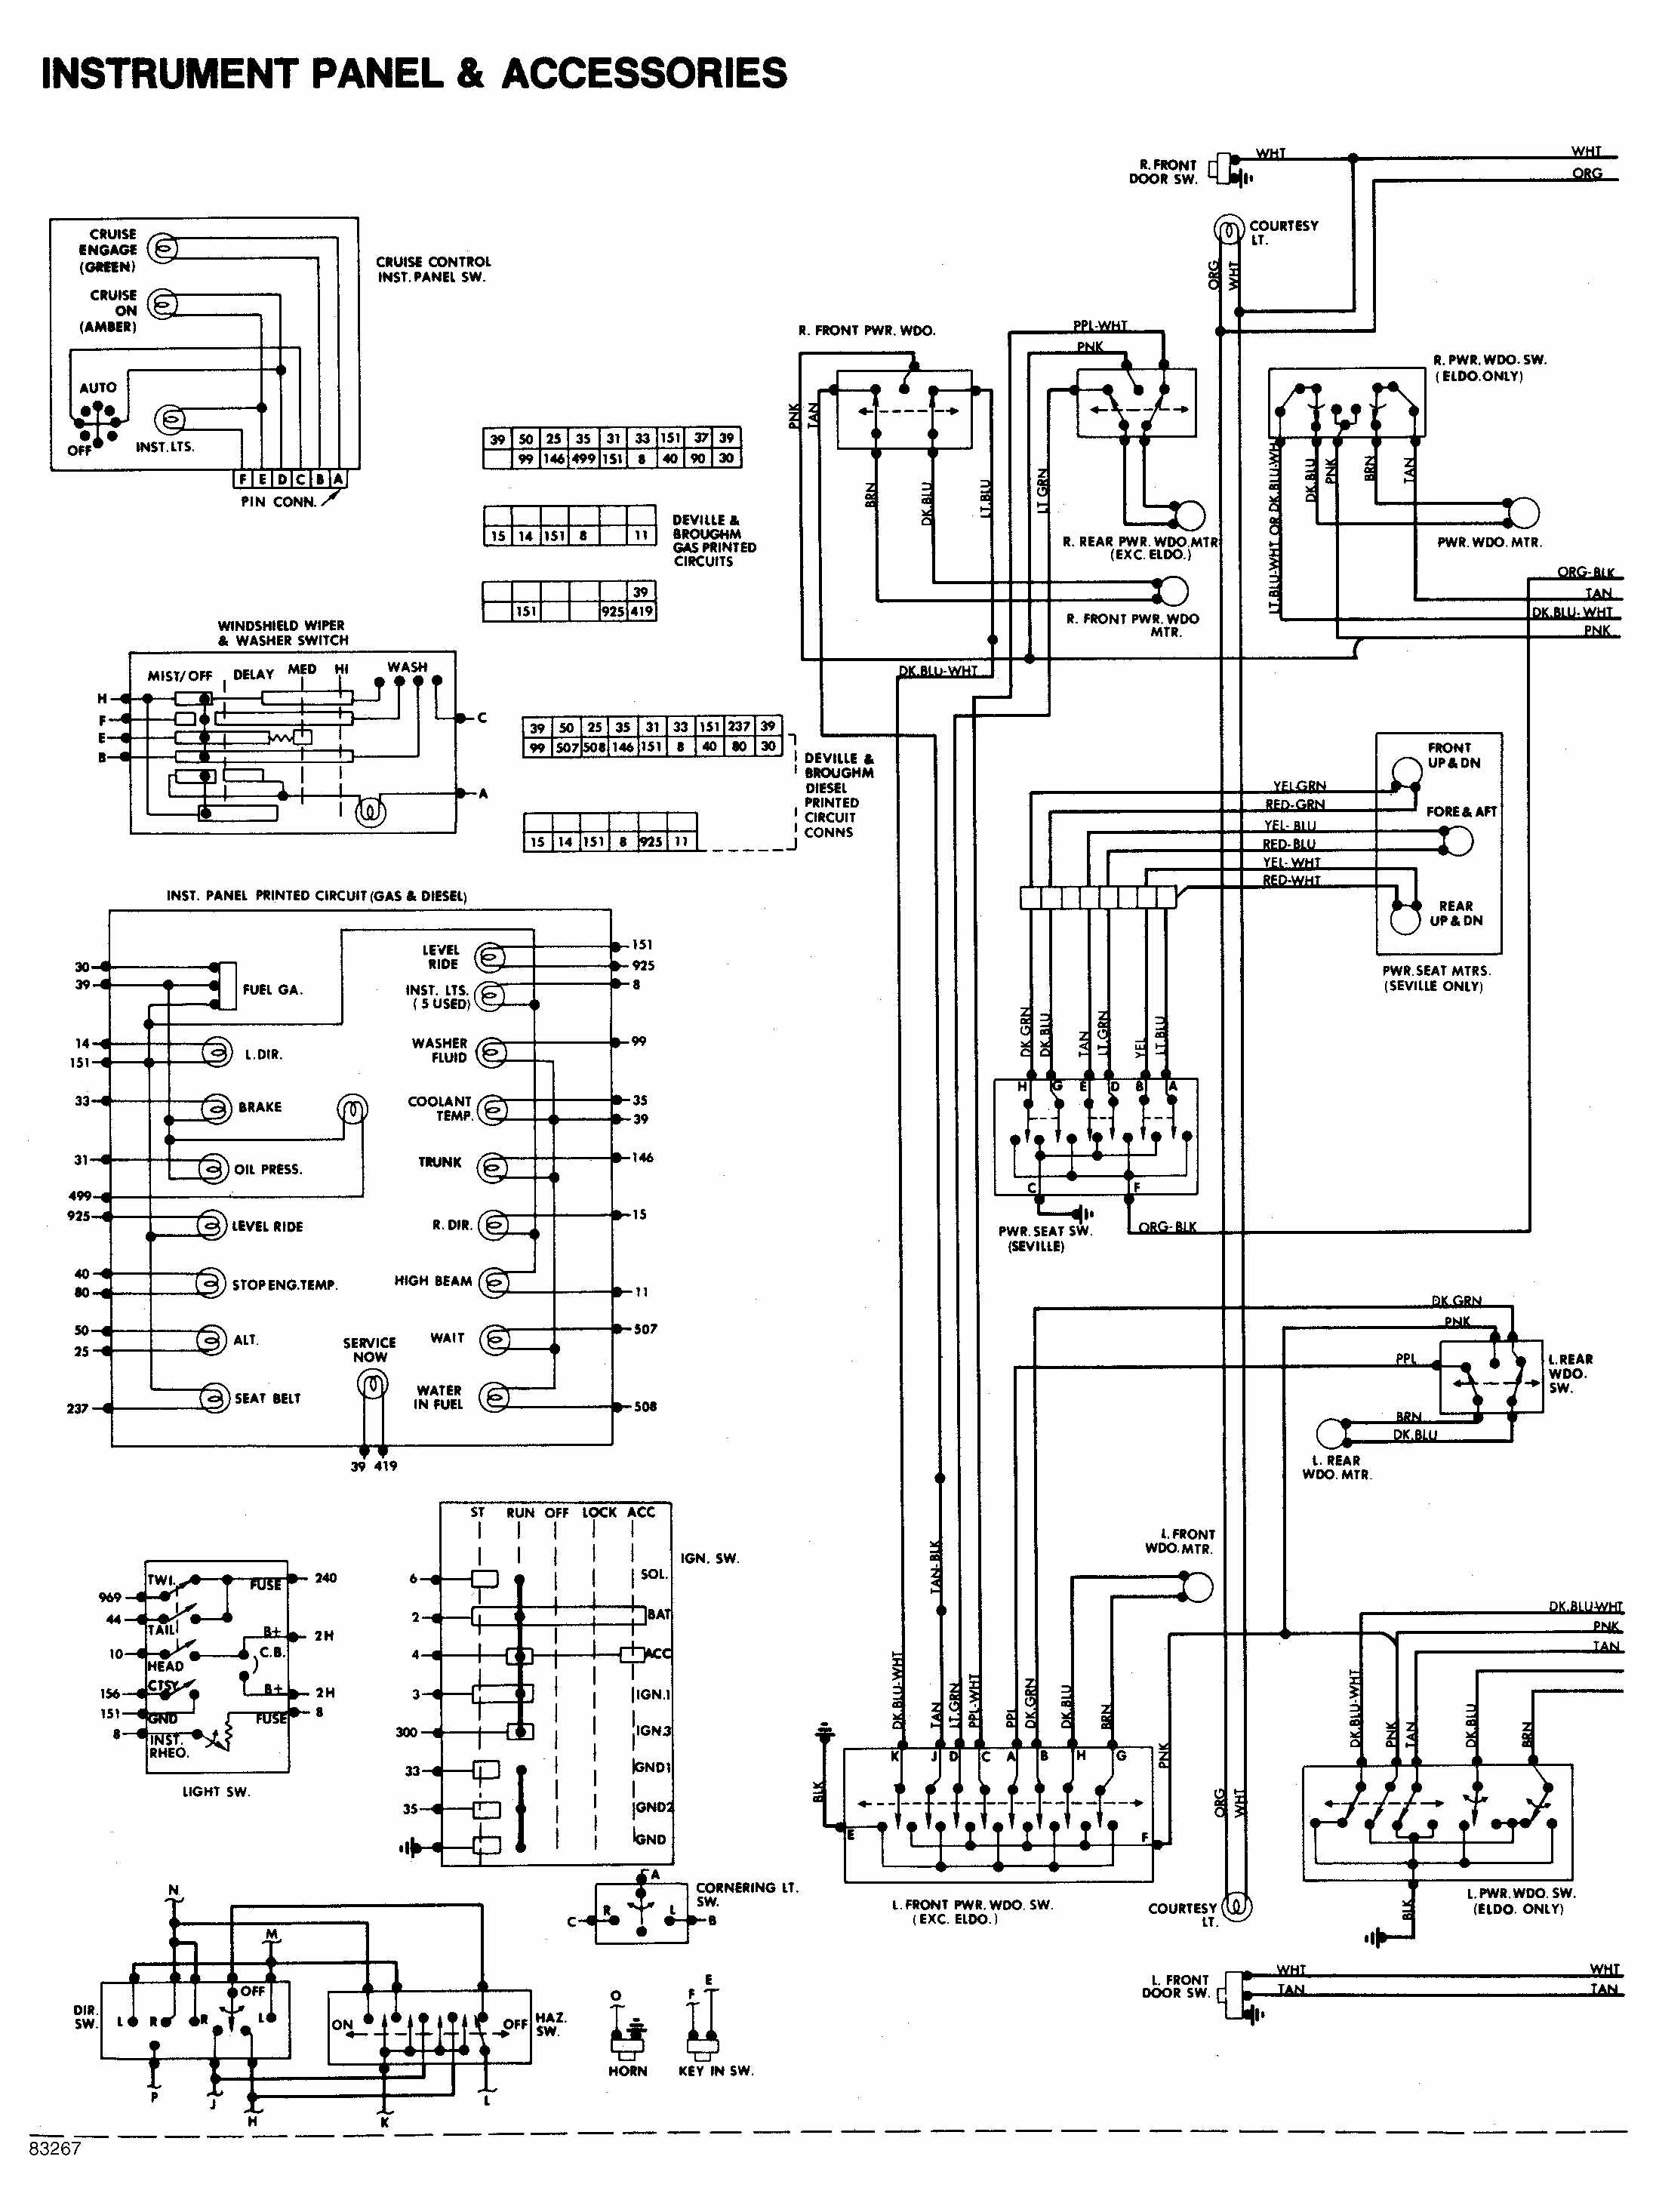 1969 dodge truck wiring diagram